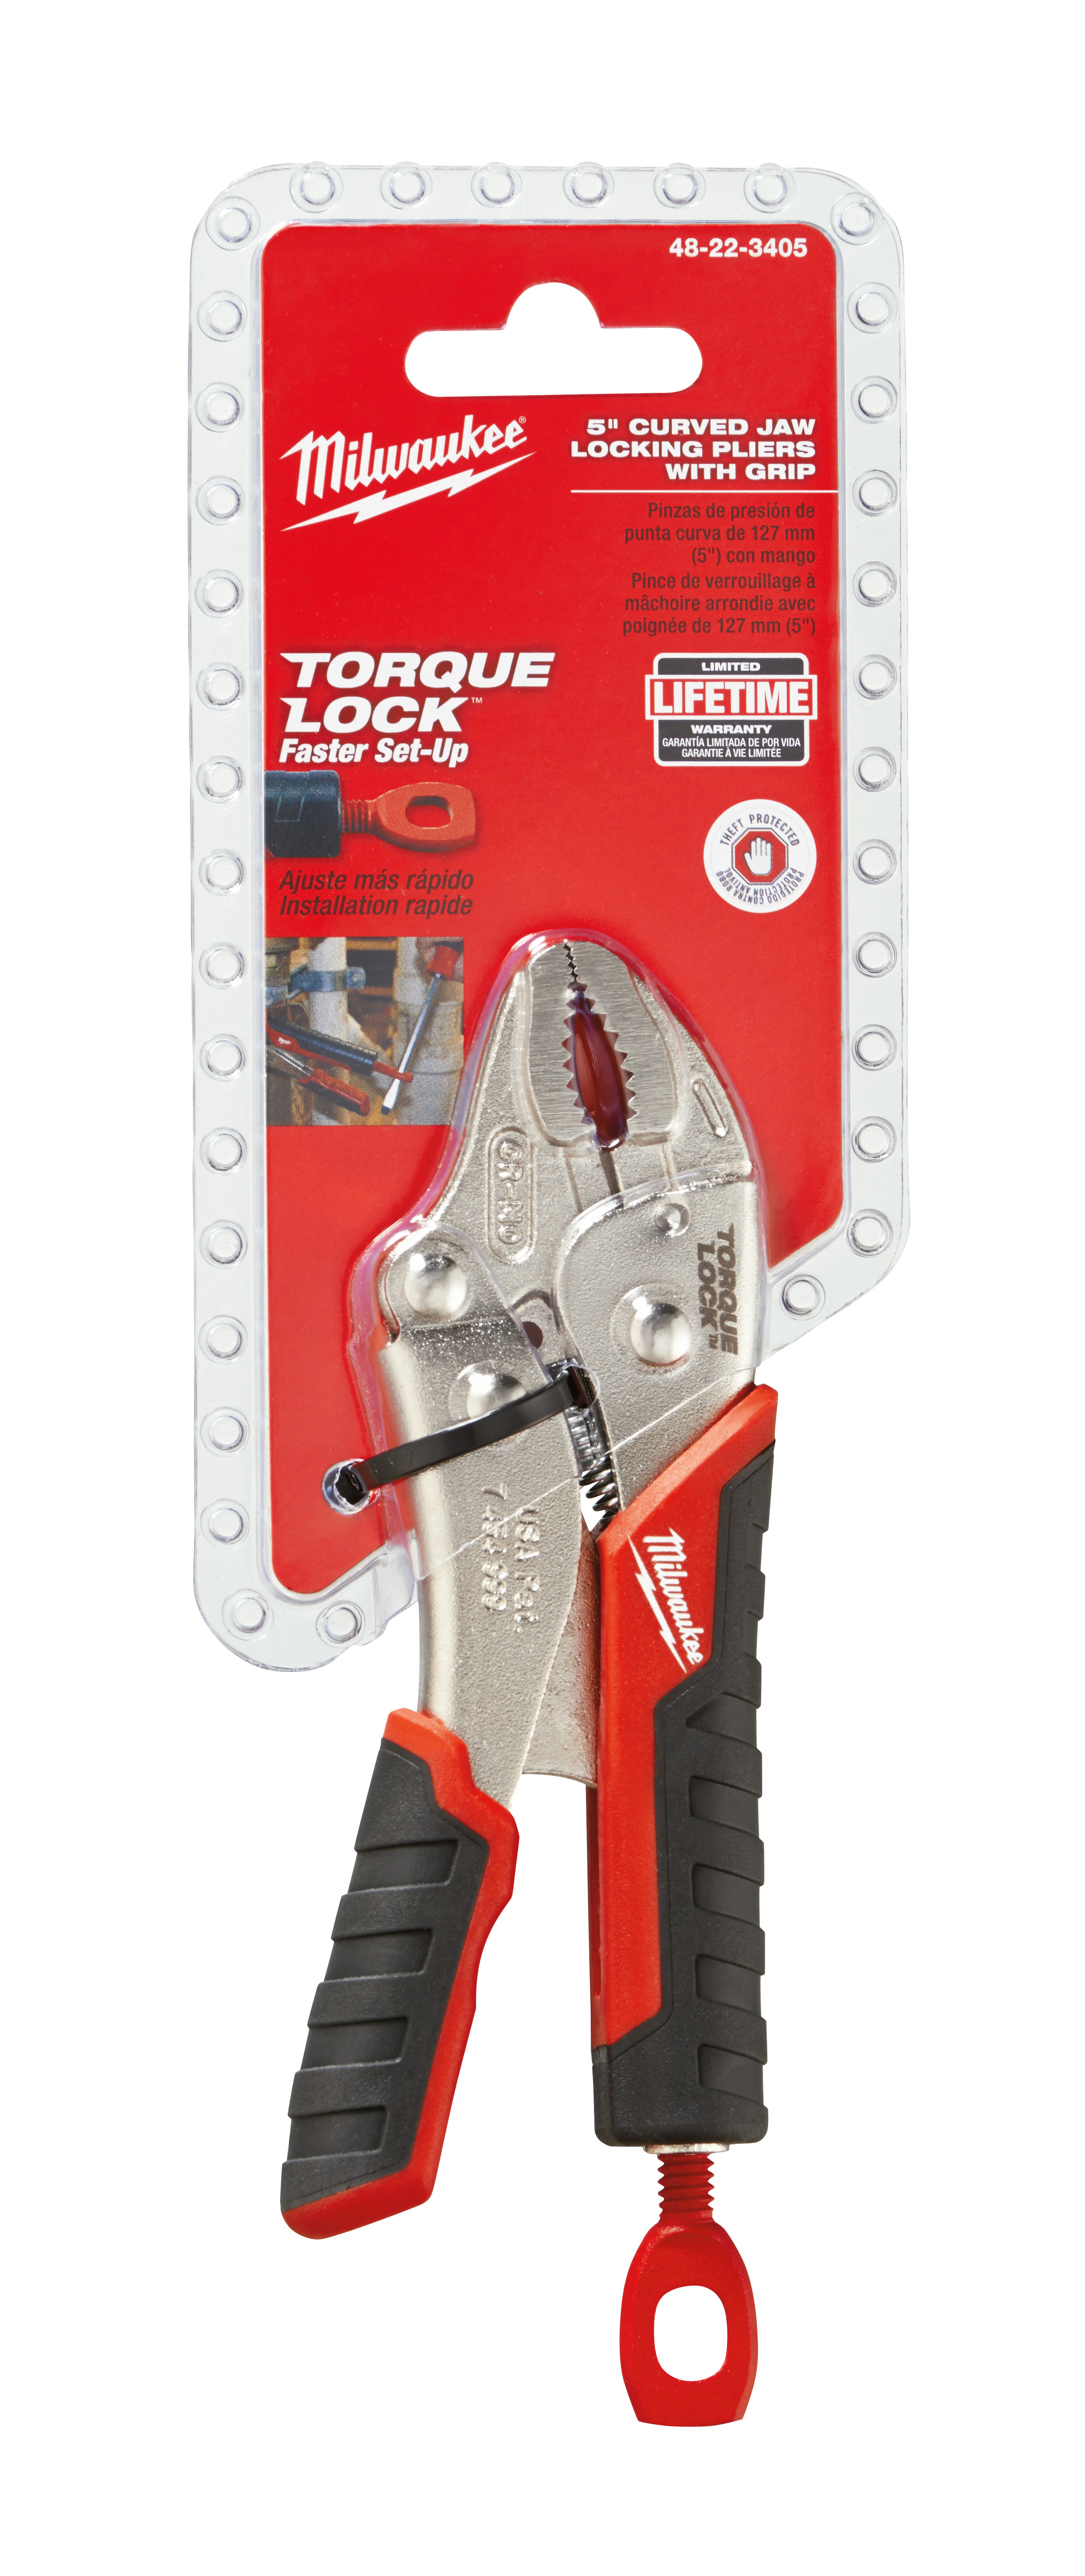 Milwaukee® TORQUE LOCK™ 48-22-3405 1-Handed Lever Locking Plier, 1-1/4 in Nominal, 29/32 in L x 23/64 in W x 23/64 in THK Alloy Steel Curved Jaw, 5 in OAL